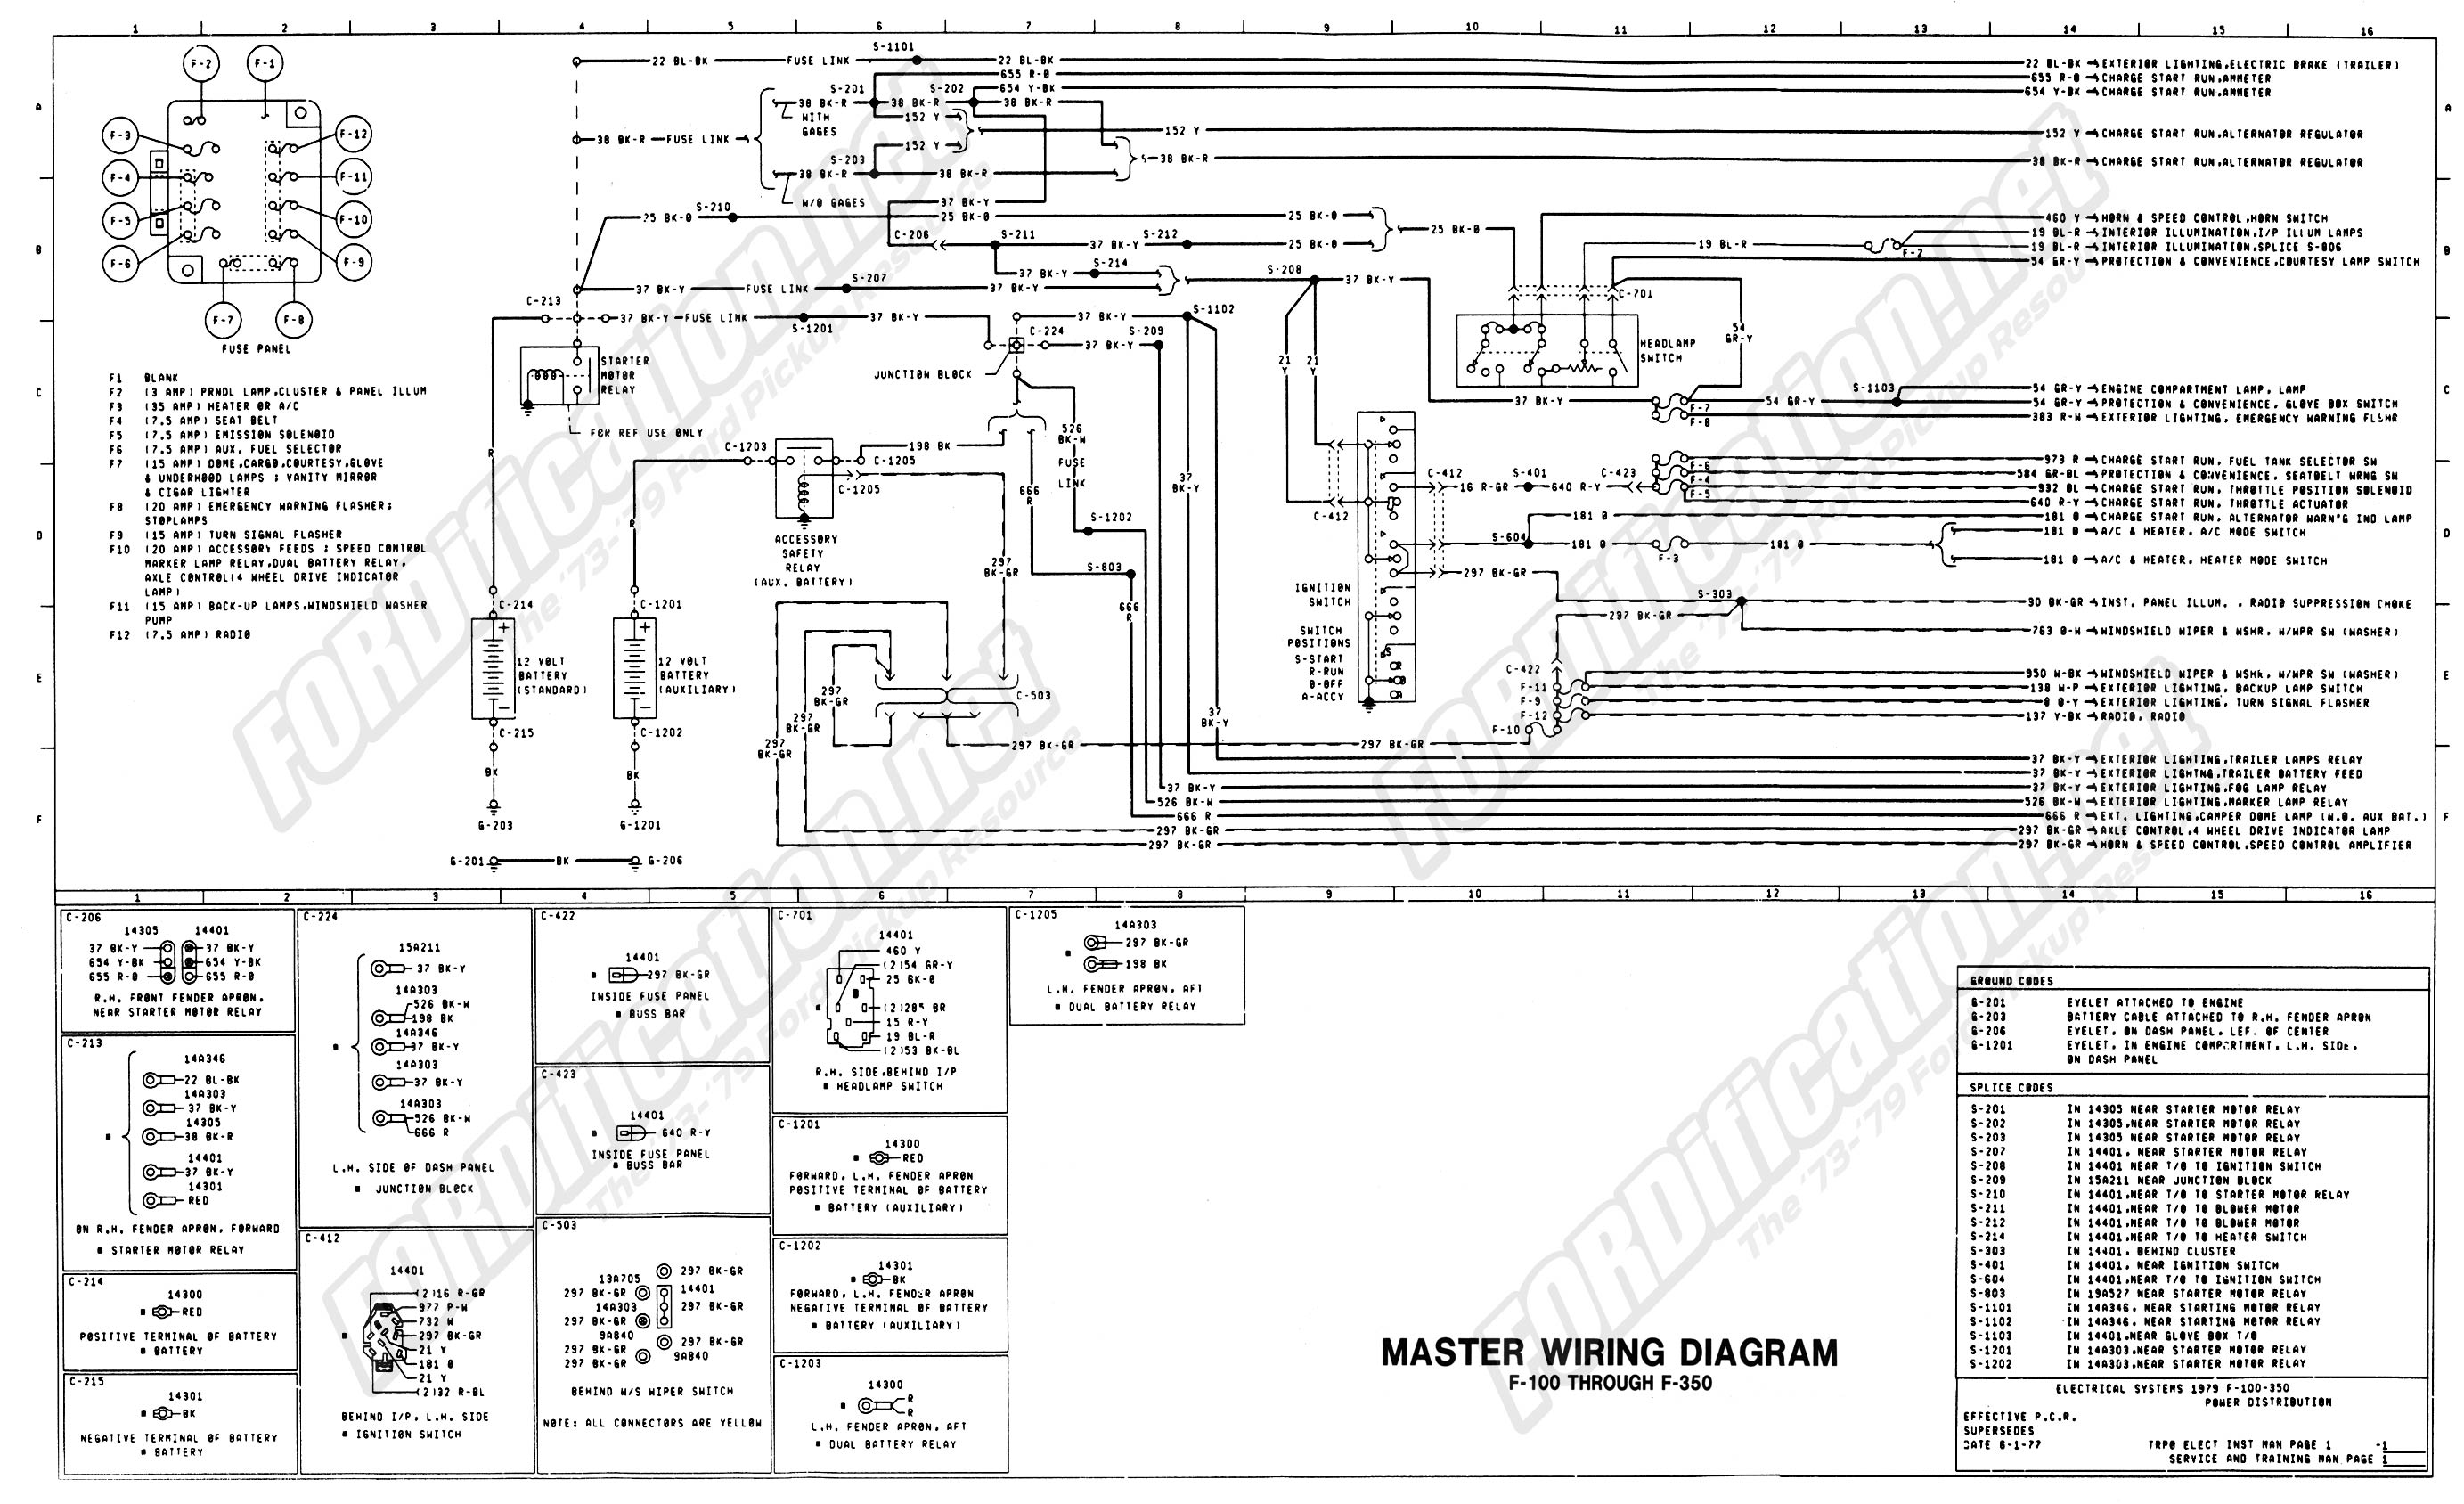 wiring_79master_1of9 1973 1979 ford truck wiring diagrams & schematics fordification net ford ignition switch diagram at couponss.co